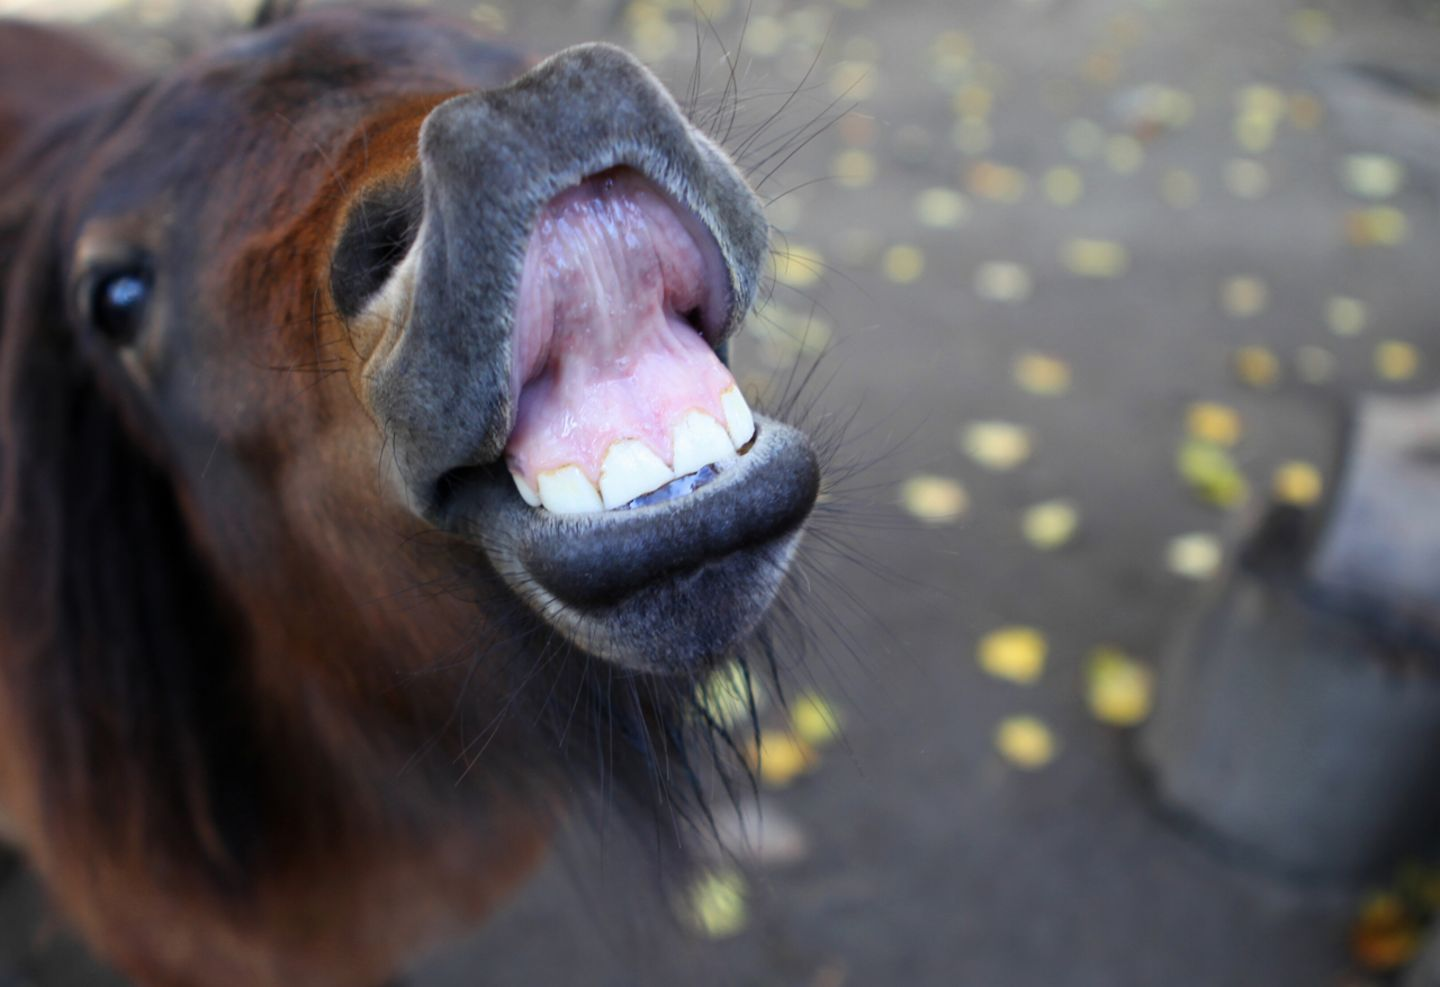 Englische Redewendung: Straight from the horse's mouth